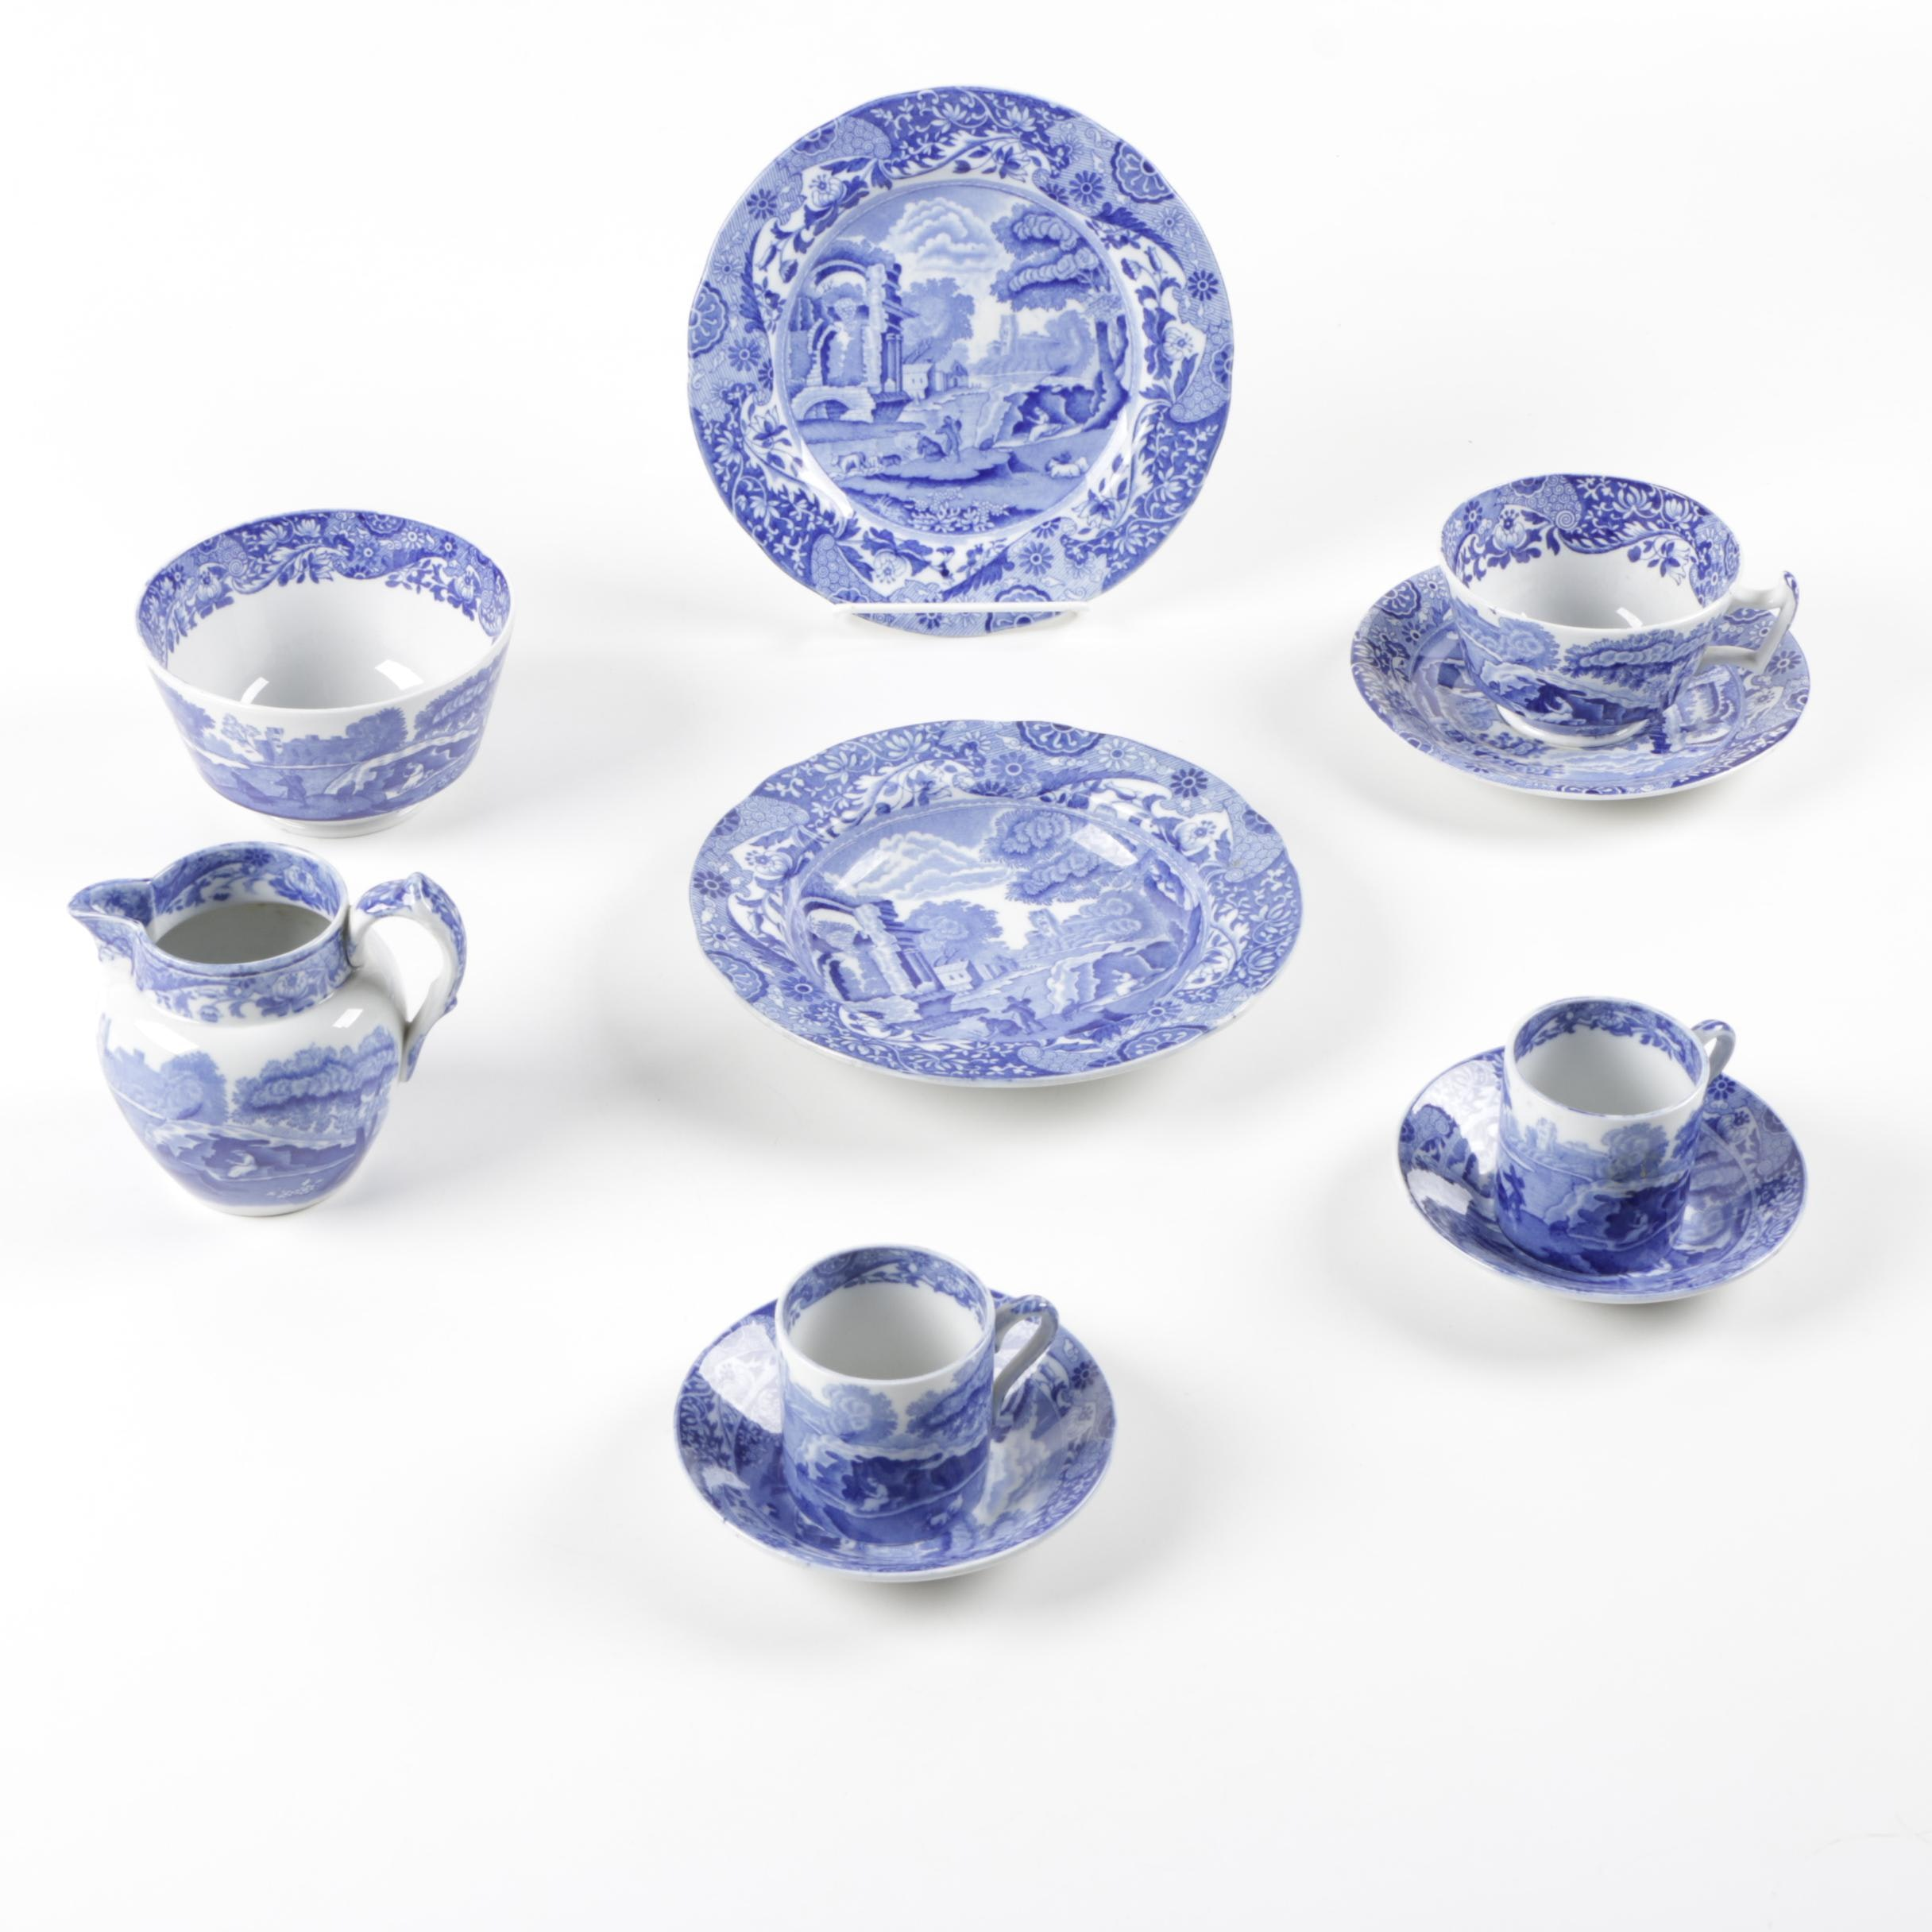 "Spode 'Italian"" Ceramic Tableware"